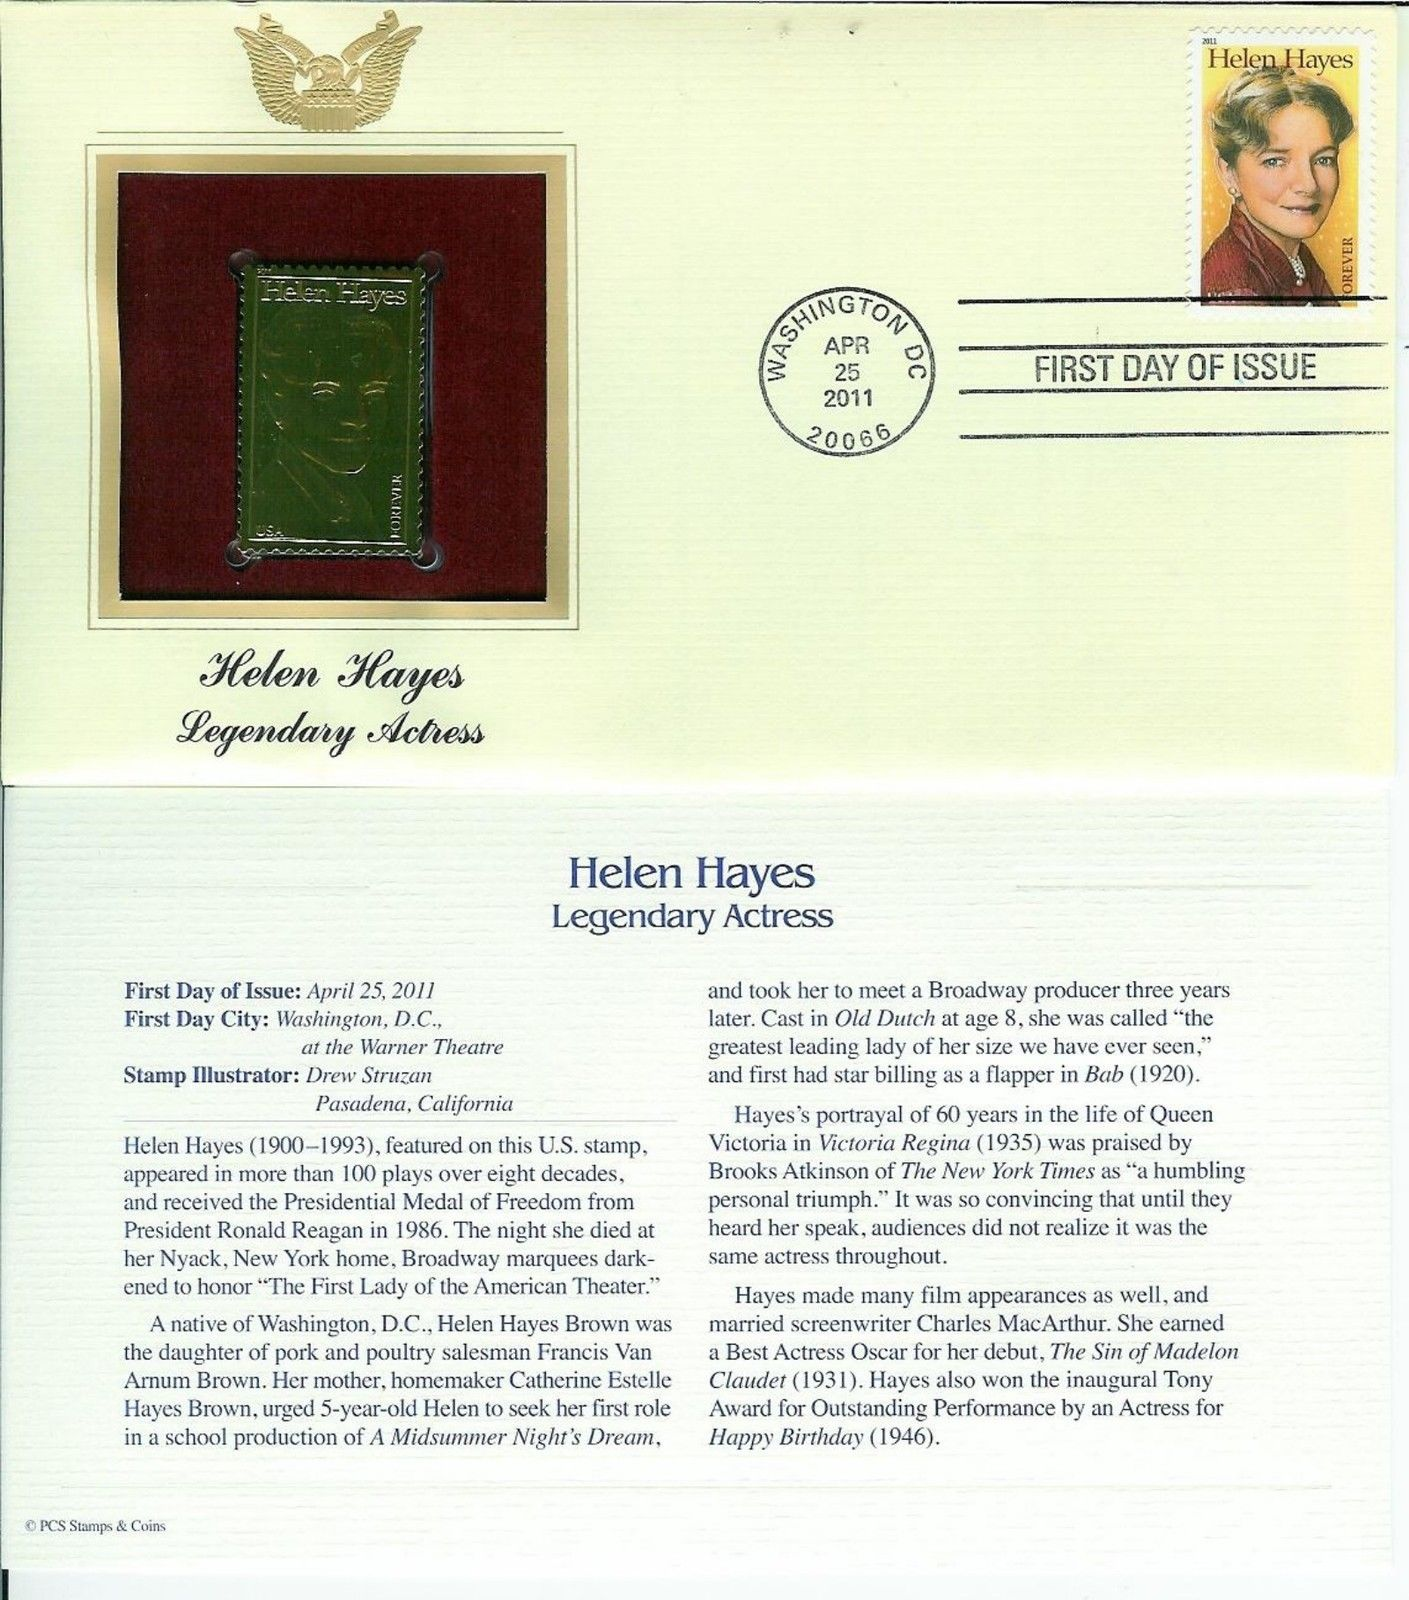 GOLD FOIL 22k FDC Helen Hayes Legendary Actress 1st Lady of American